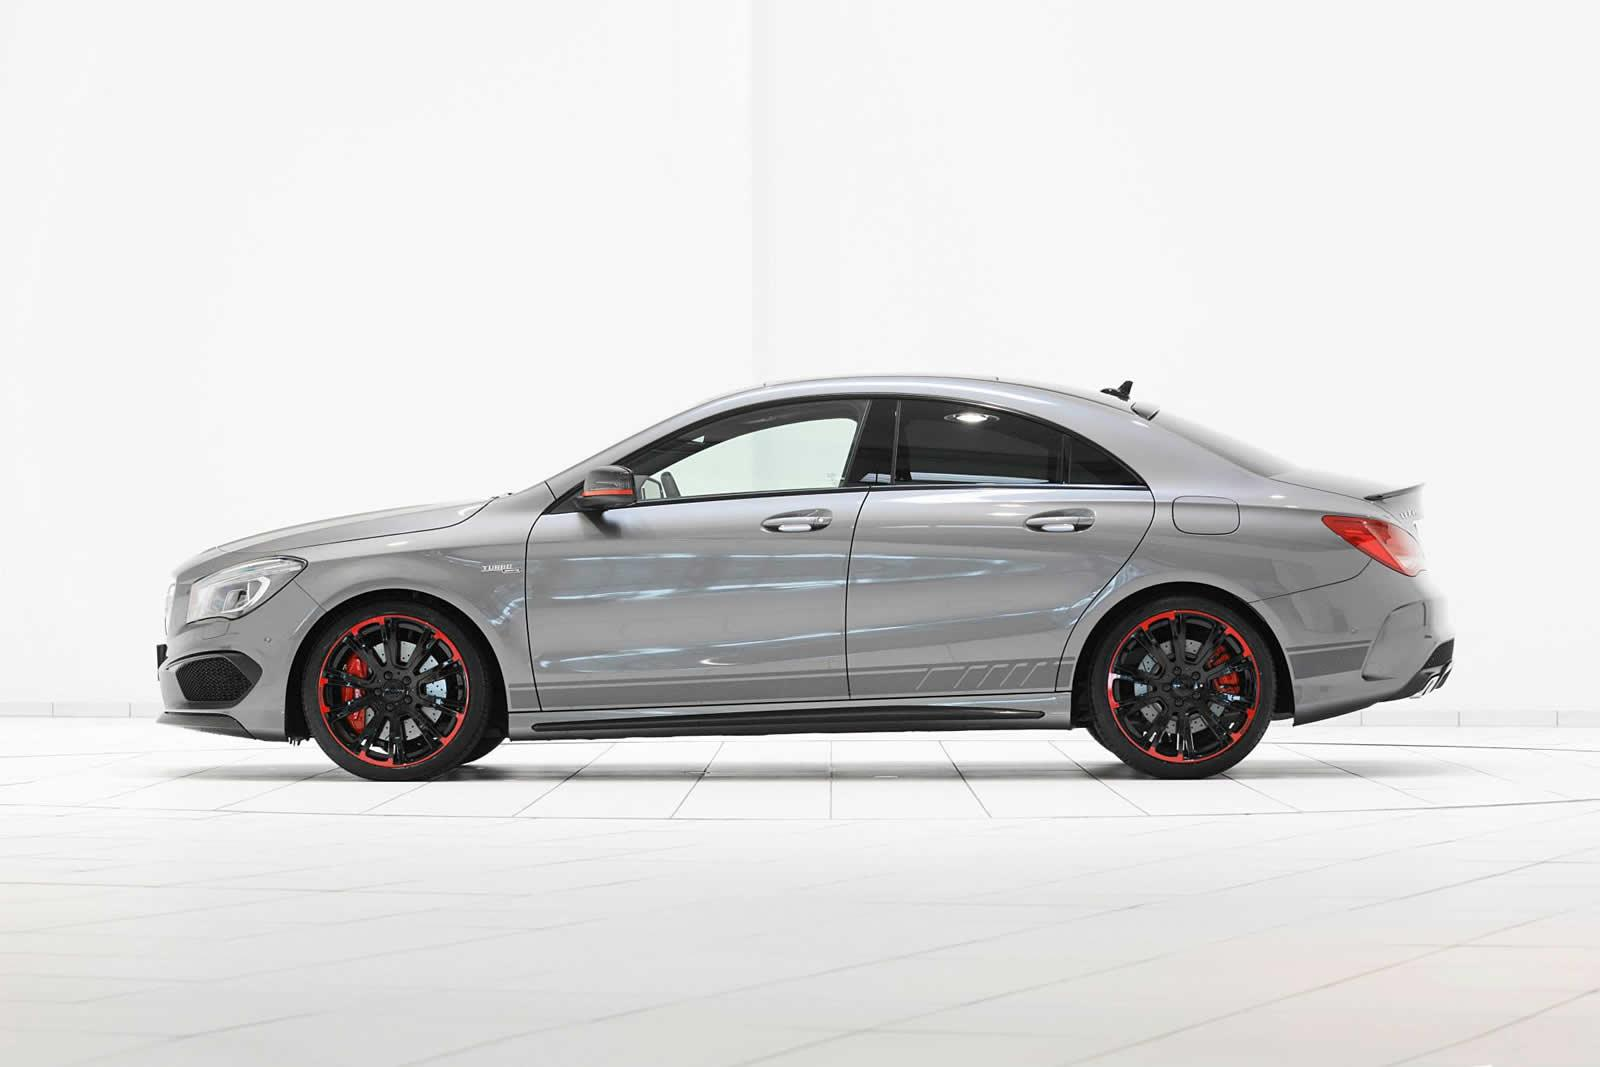 mercedes tuning brabus tuned cla45 amg with nearly 300kw. Black Bedroom Furniture Sets. Home Design Ideas